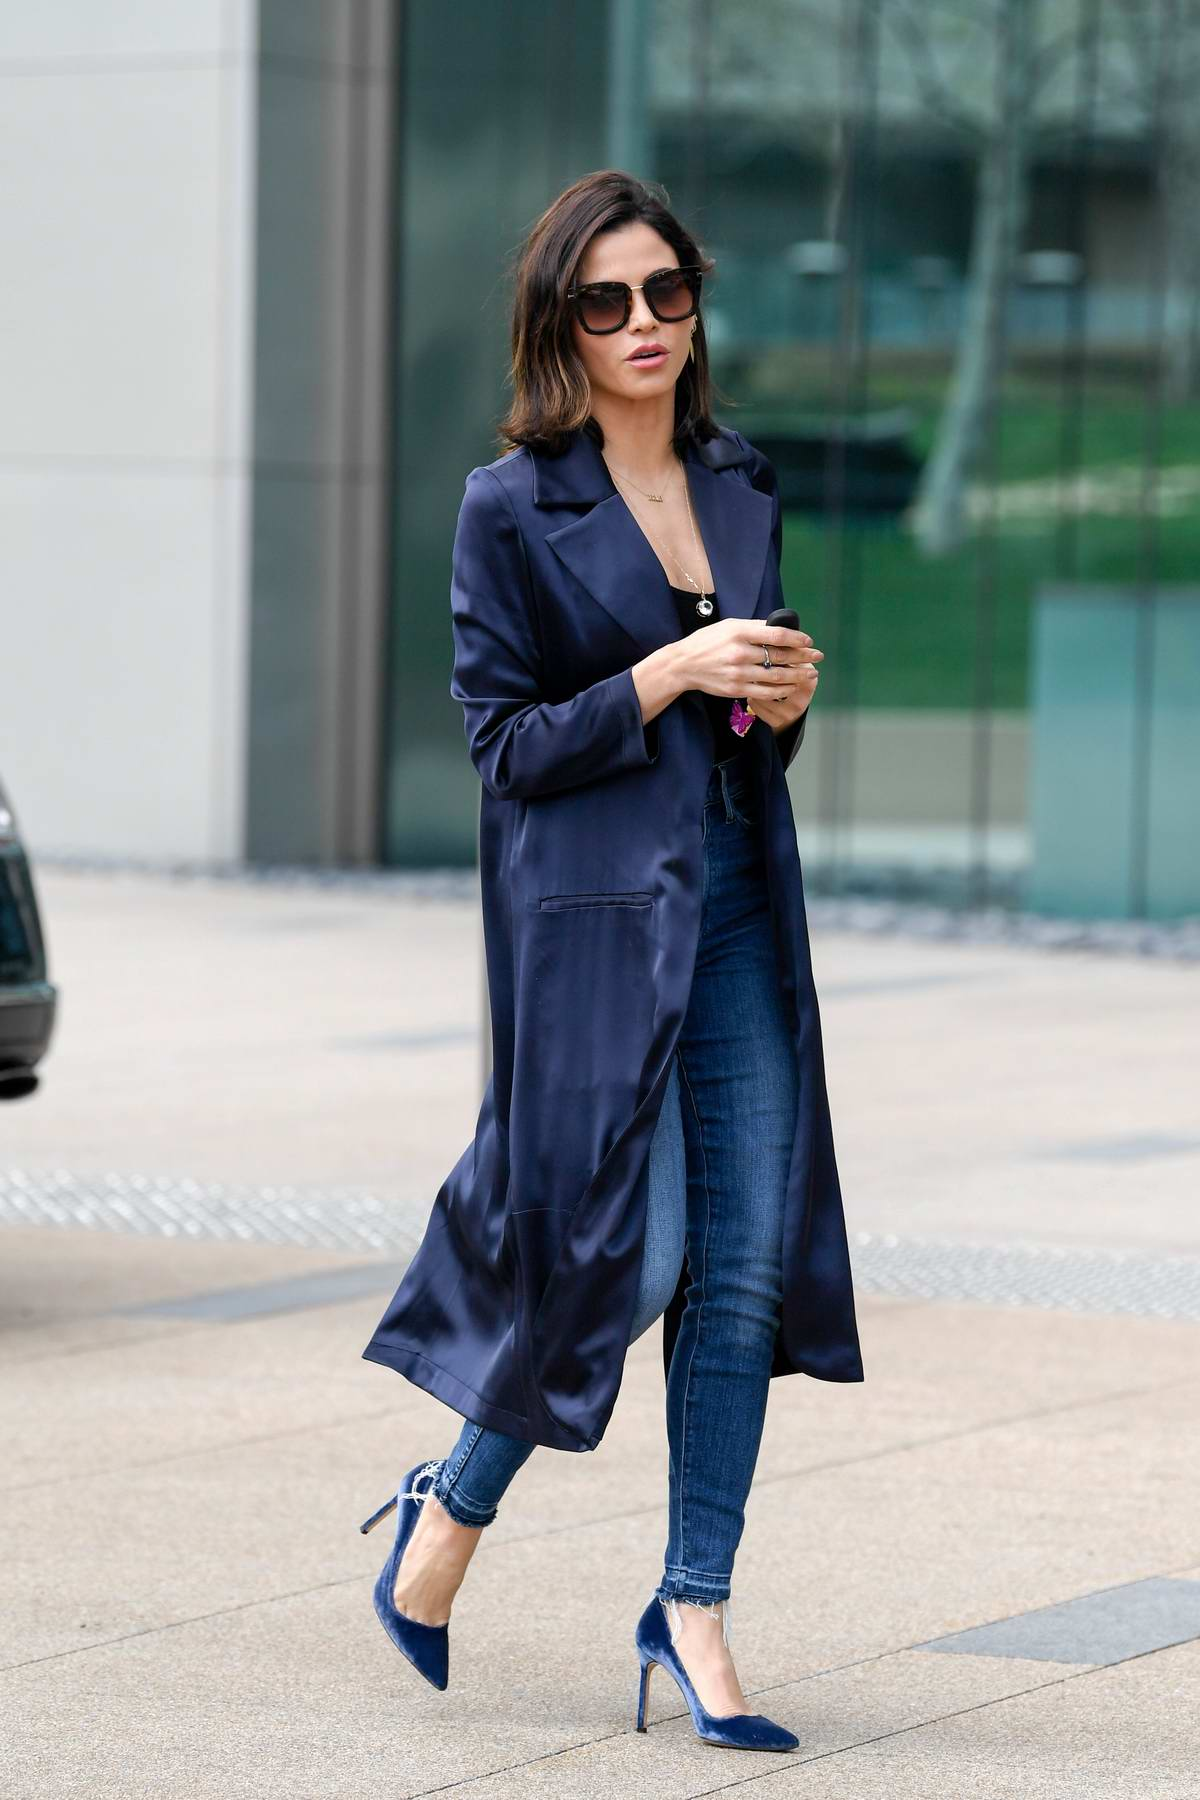 Jenna Dewan spotted in a long navy blue coat, black top, jeans with matching blue heels while arriving at an office building in Los Angeles